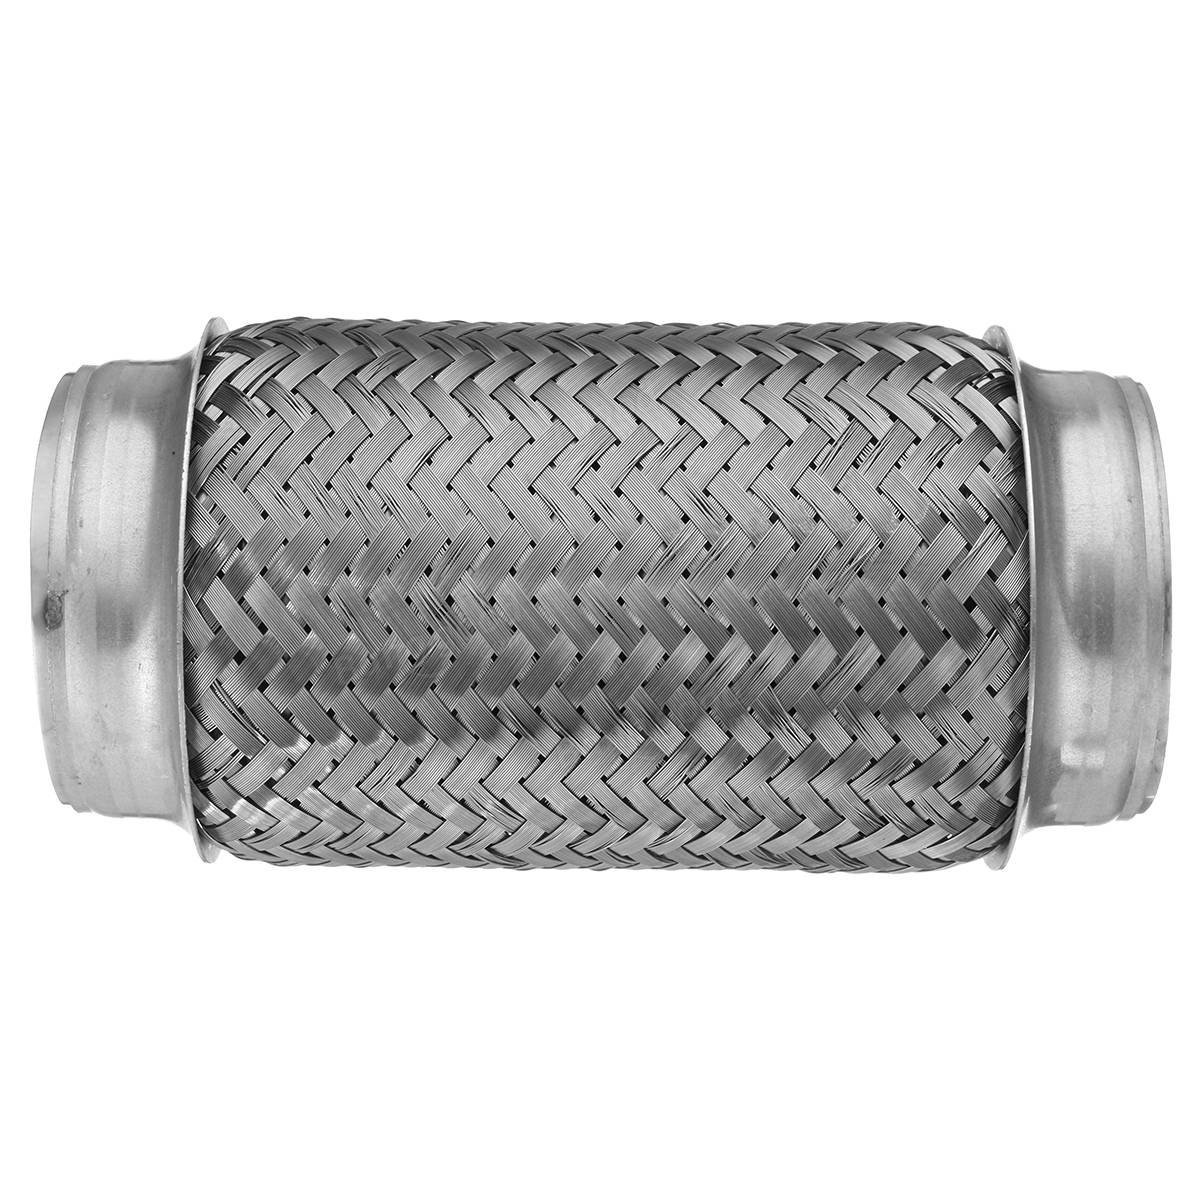 Bend Pipework - 3x8 Inch Flex Pipe Exhaust Stainless Steel Double Braid Duty Coupling Tube - Bending Tabor Pipage Inflection Shriek Flection Screech Flexion Organ - 1PCs